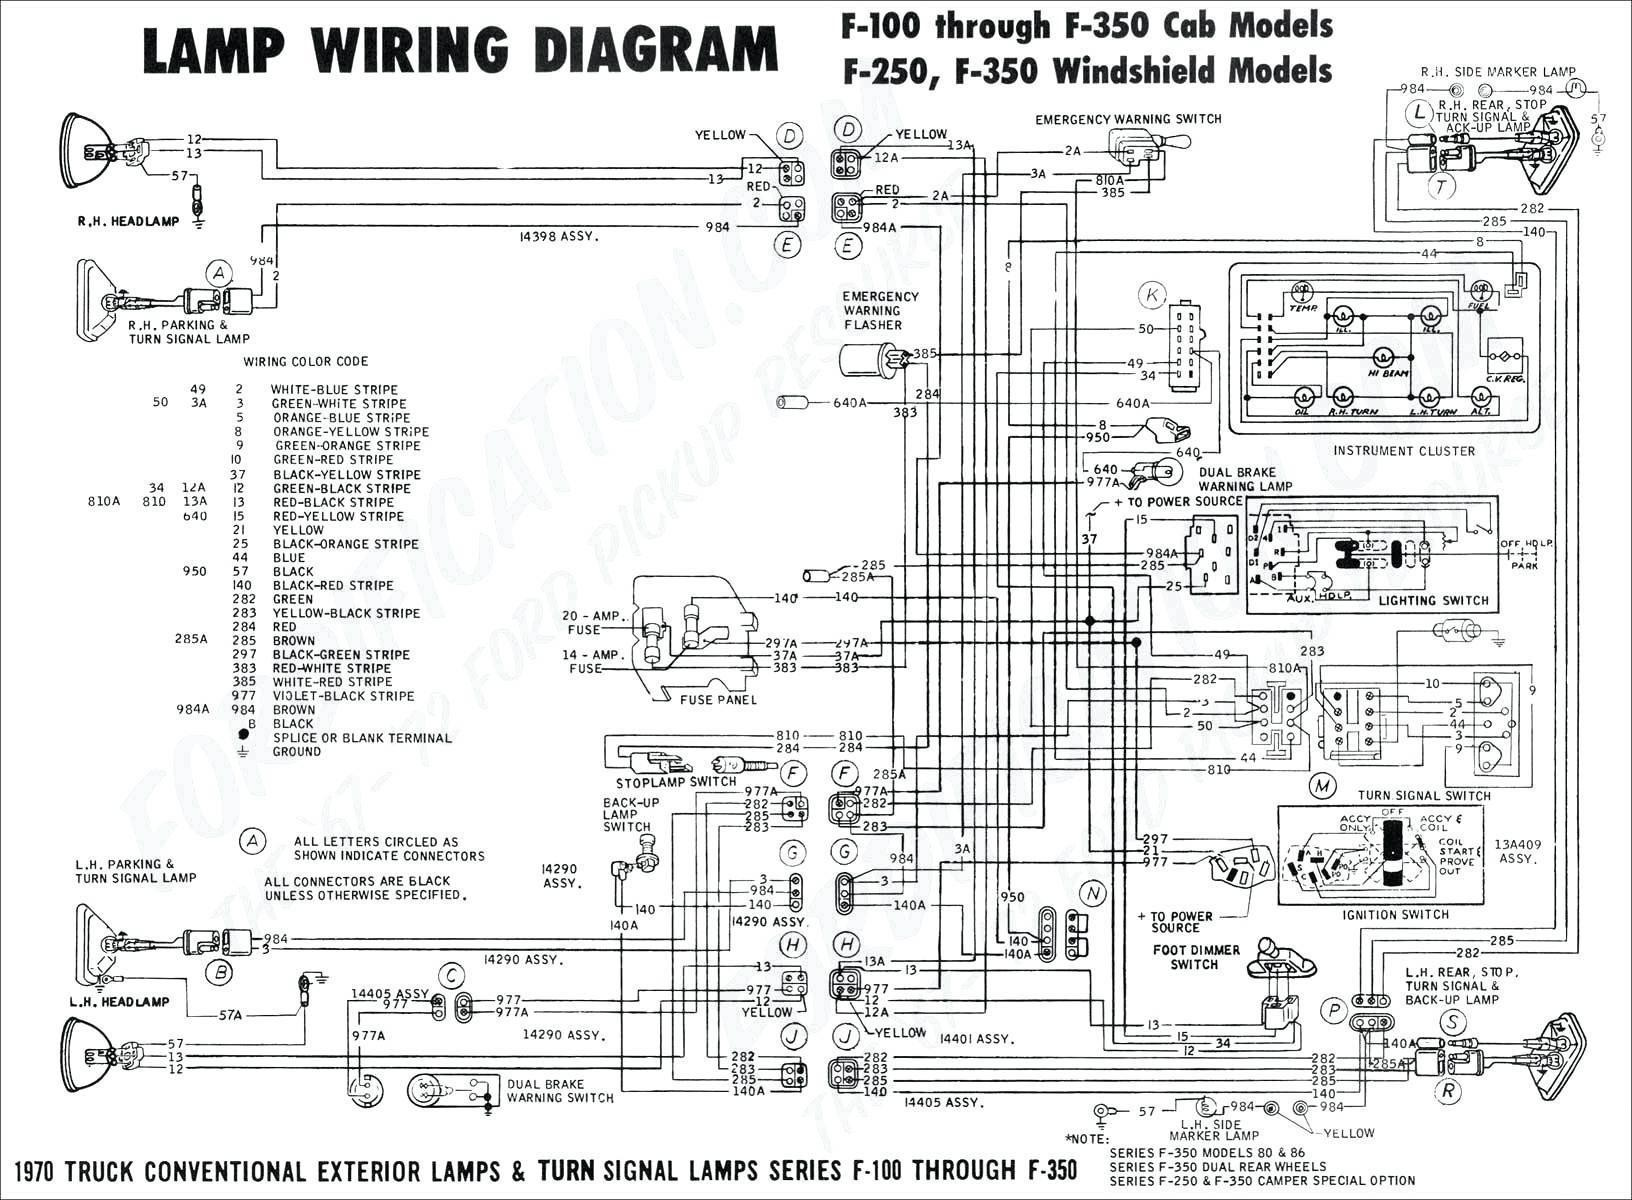 inspirational 2002 dodge ram 1500 blower motor wiring diagram 2002 dodge  ram 1500 wiring diagram 1996